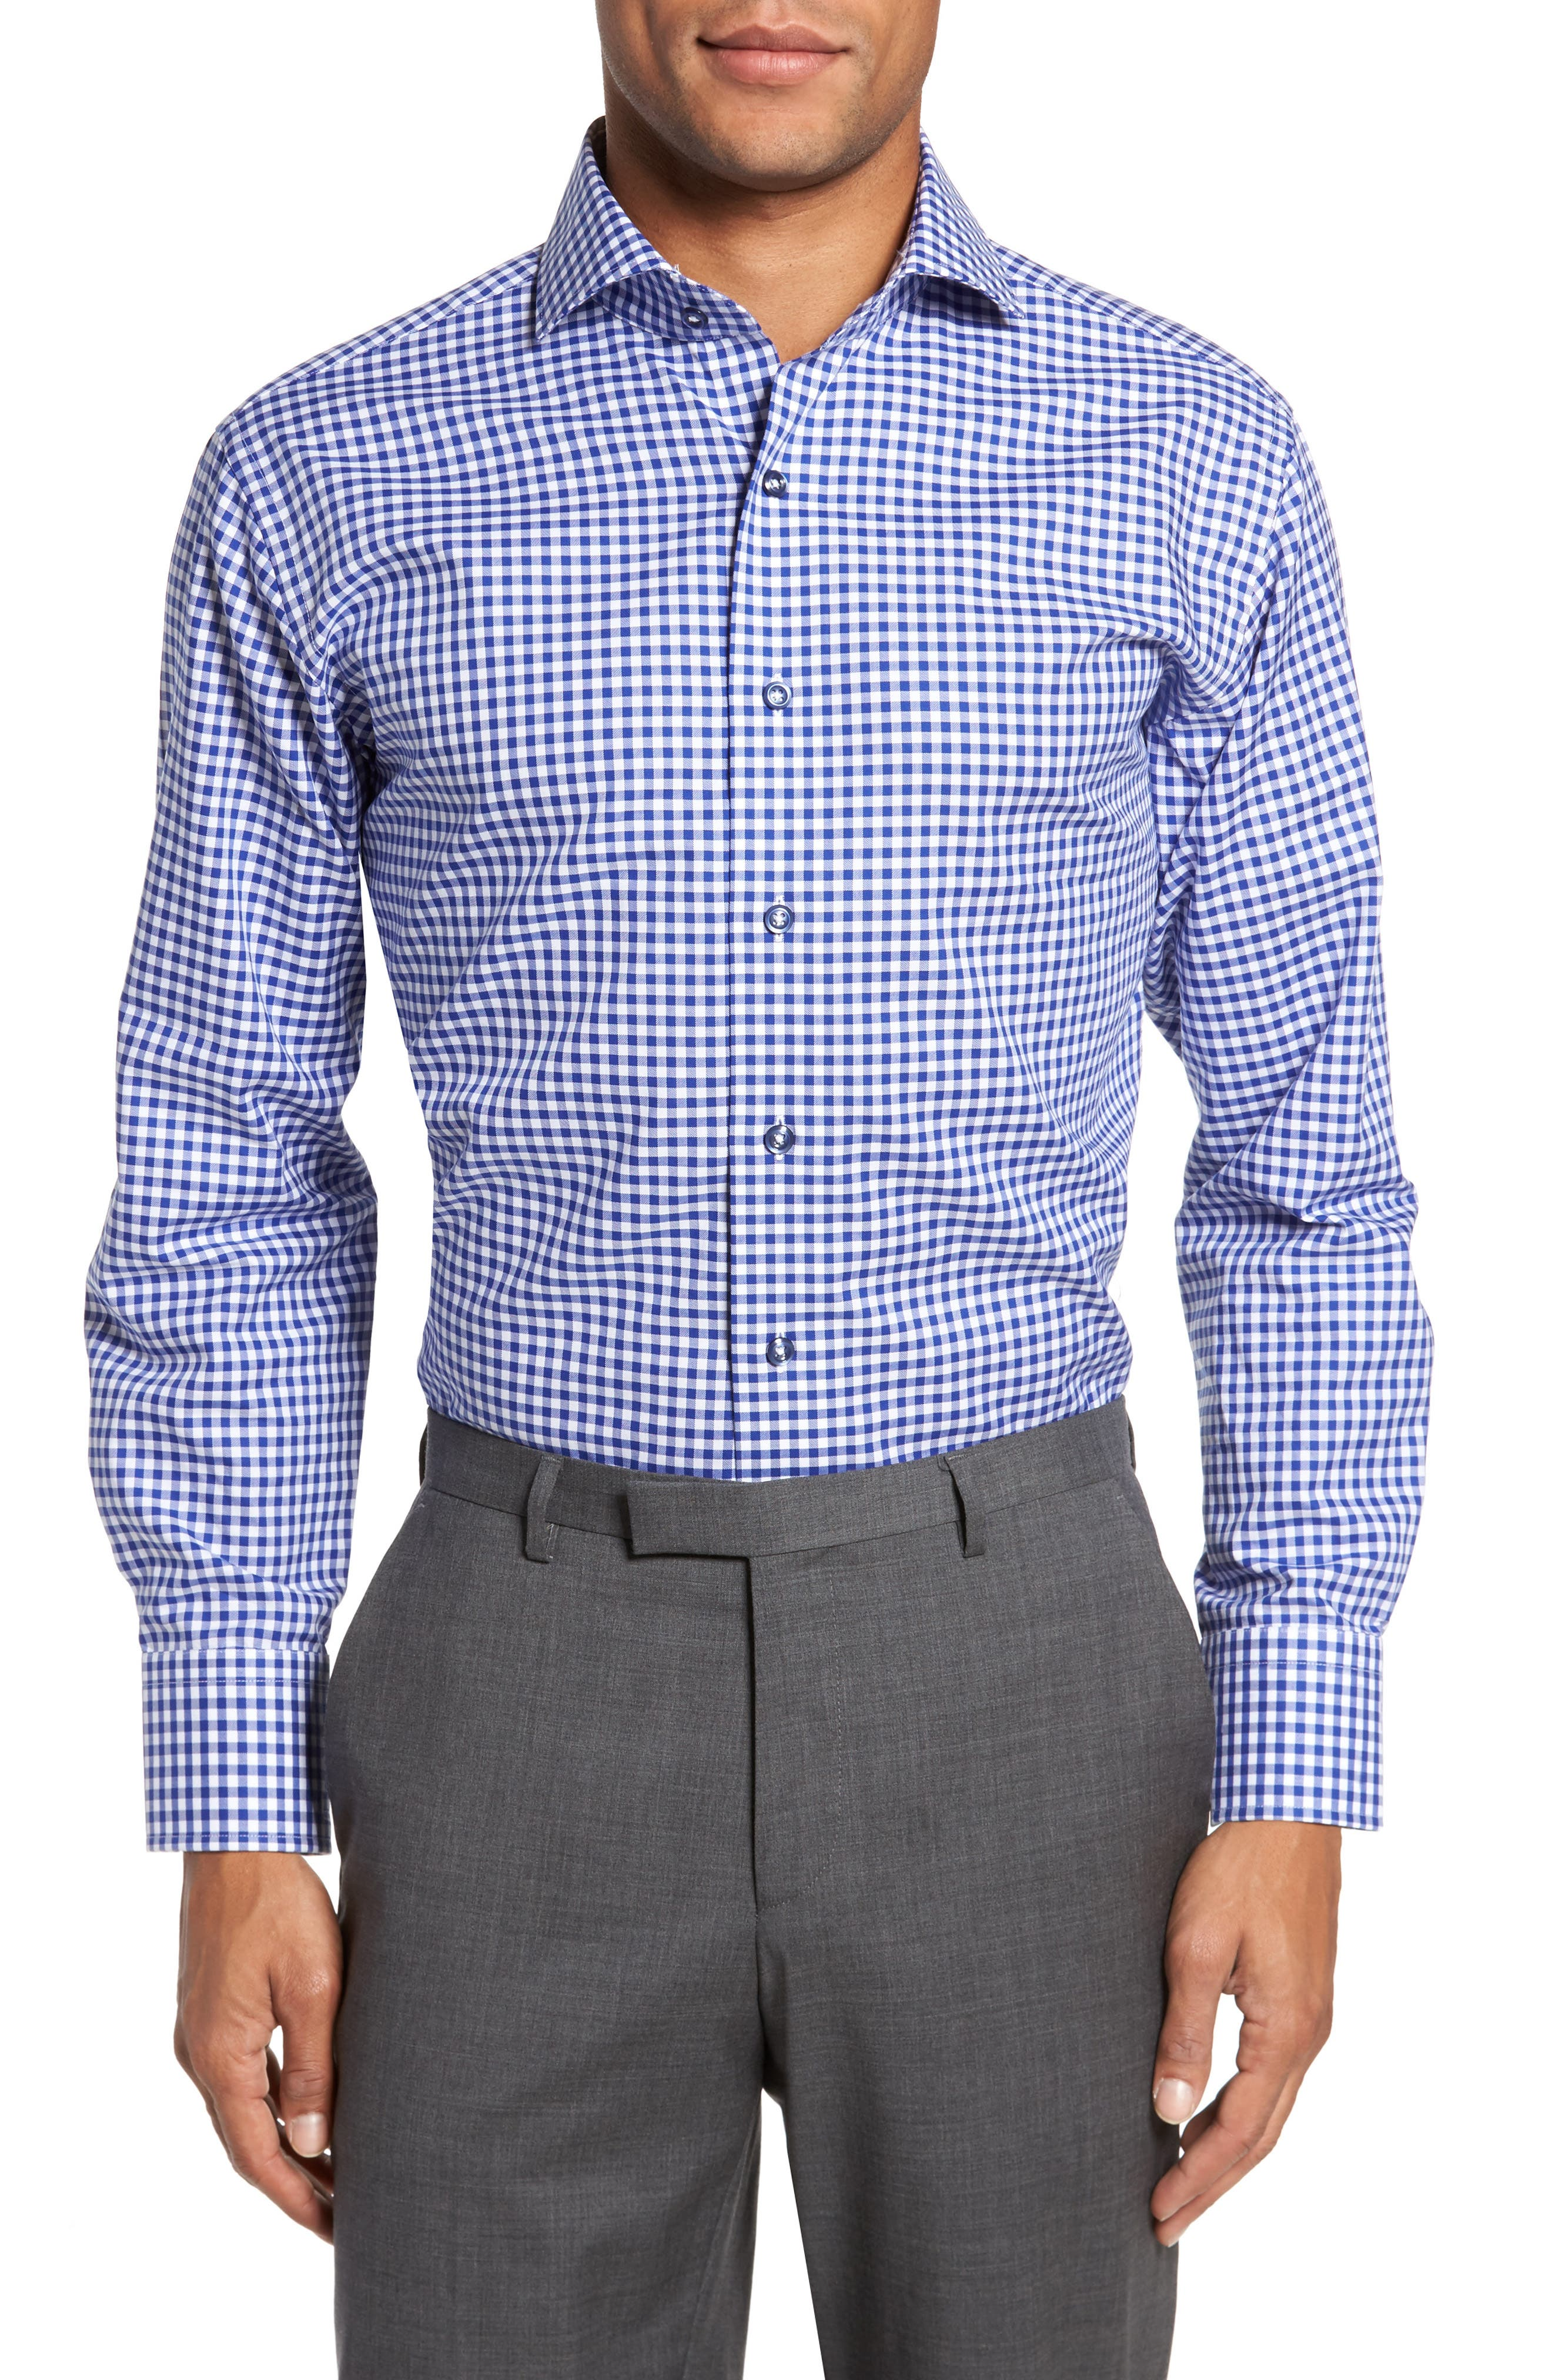 Trim Fit Textured Gingham Dress Shirt,                         Main,                         color, Navy